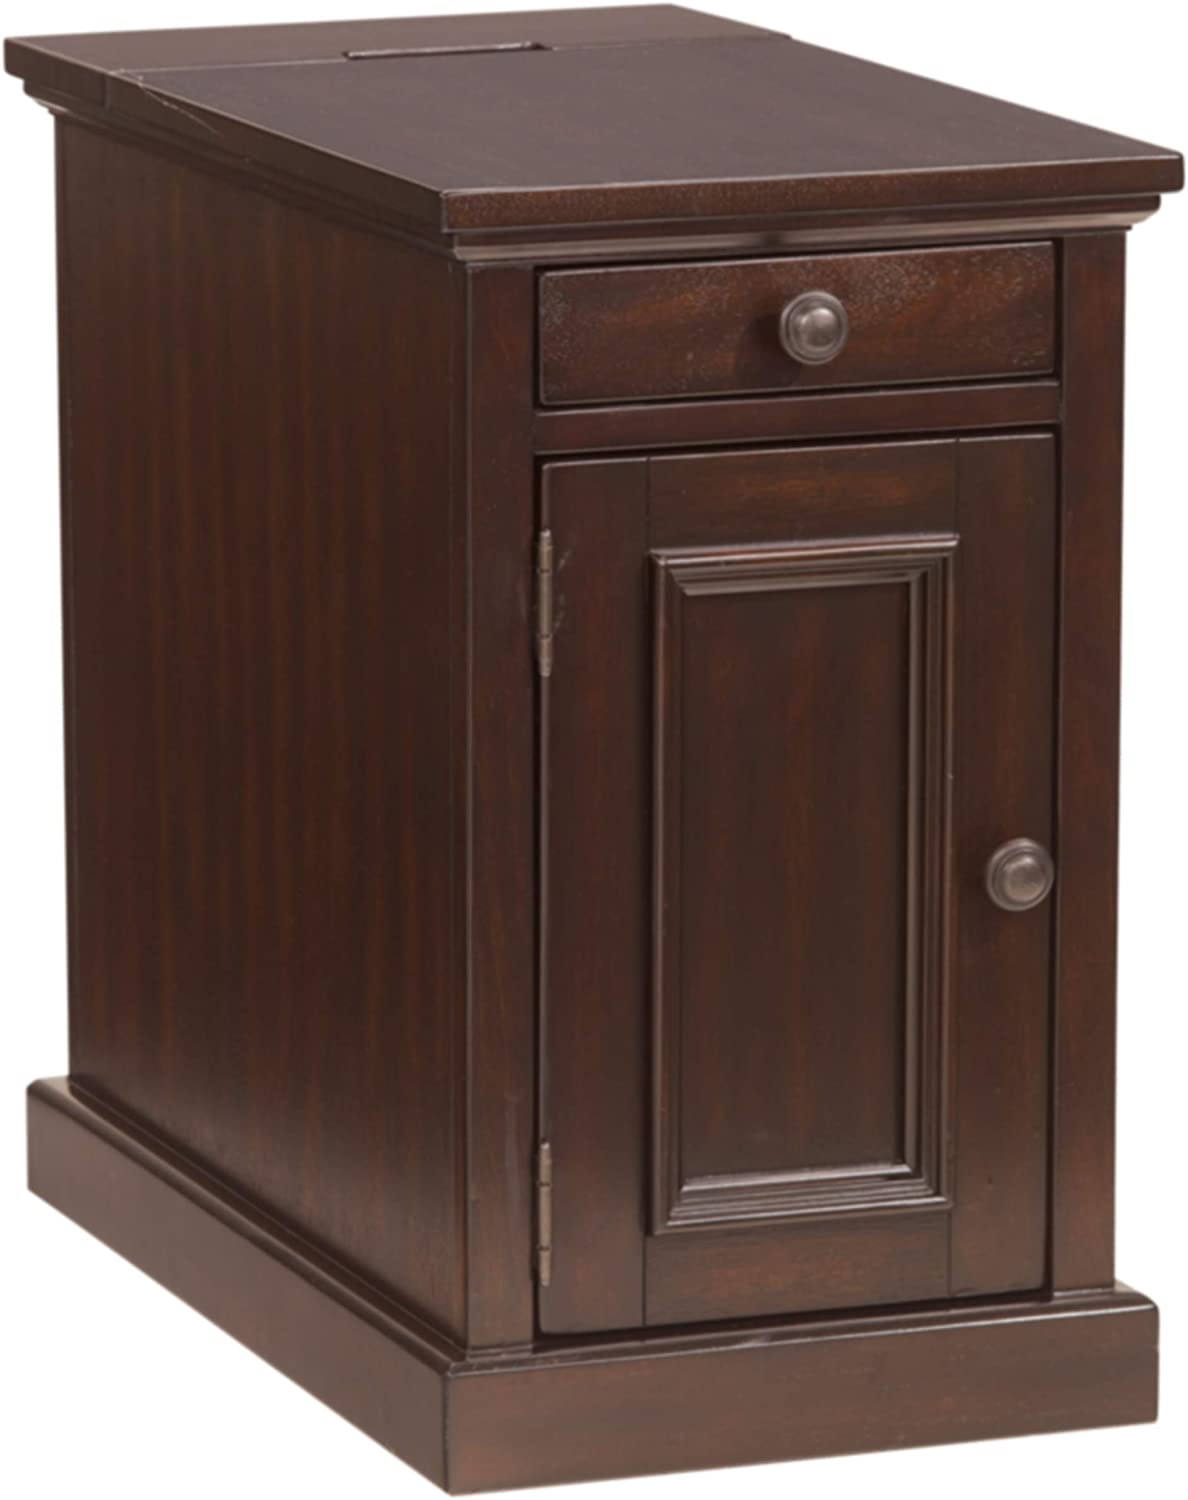 Signature Design by Ashley Laflorn Chairside End Table with USB Ports & Outlets - Sable